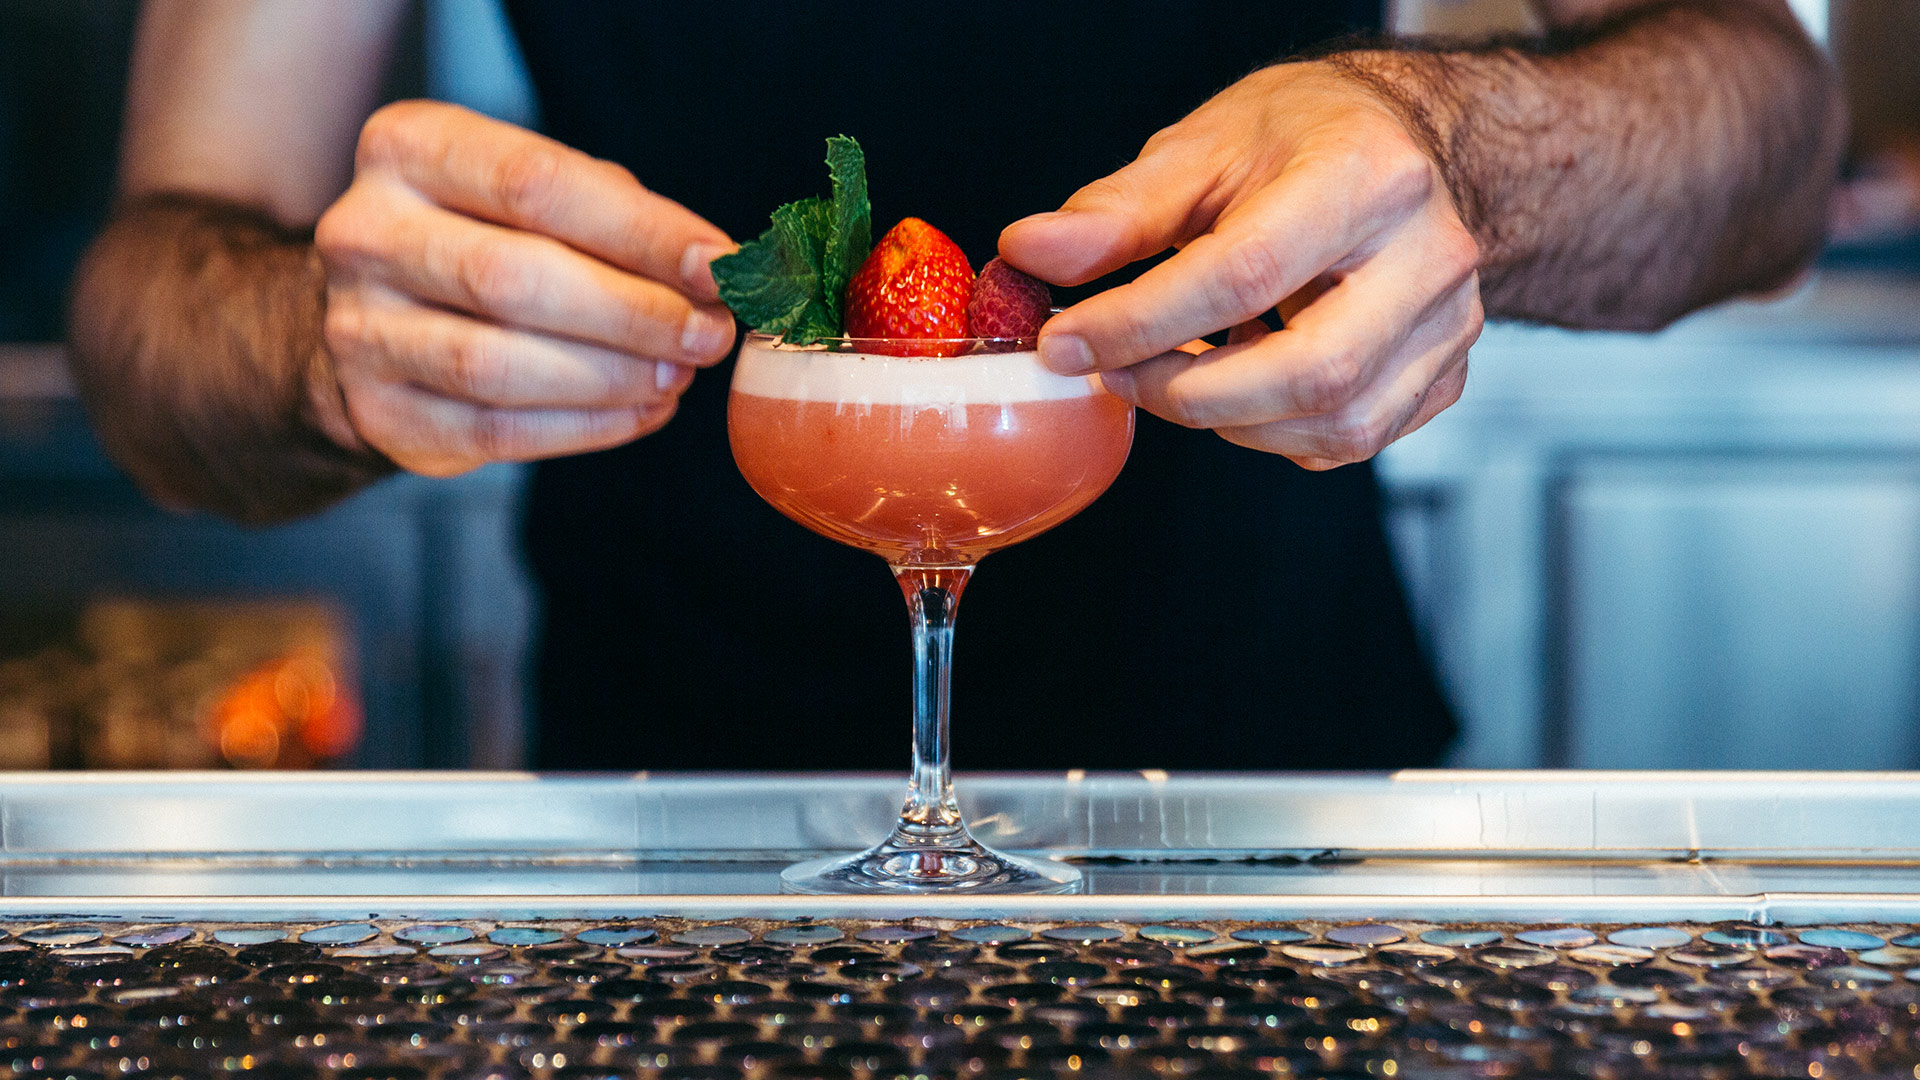 Hands finishing a cocktail with mint and berries